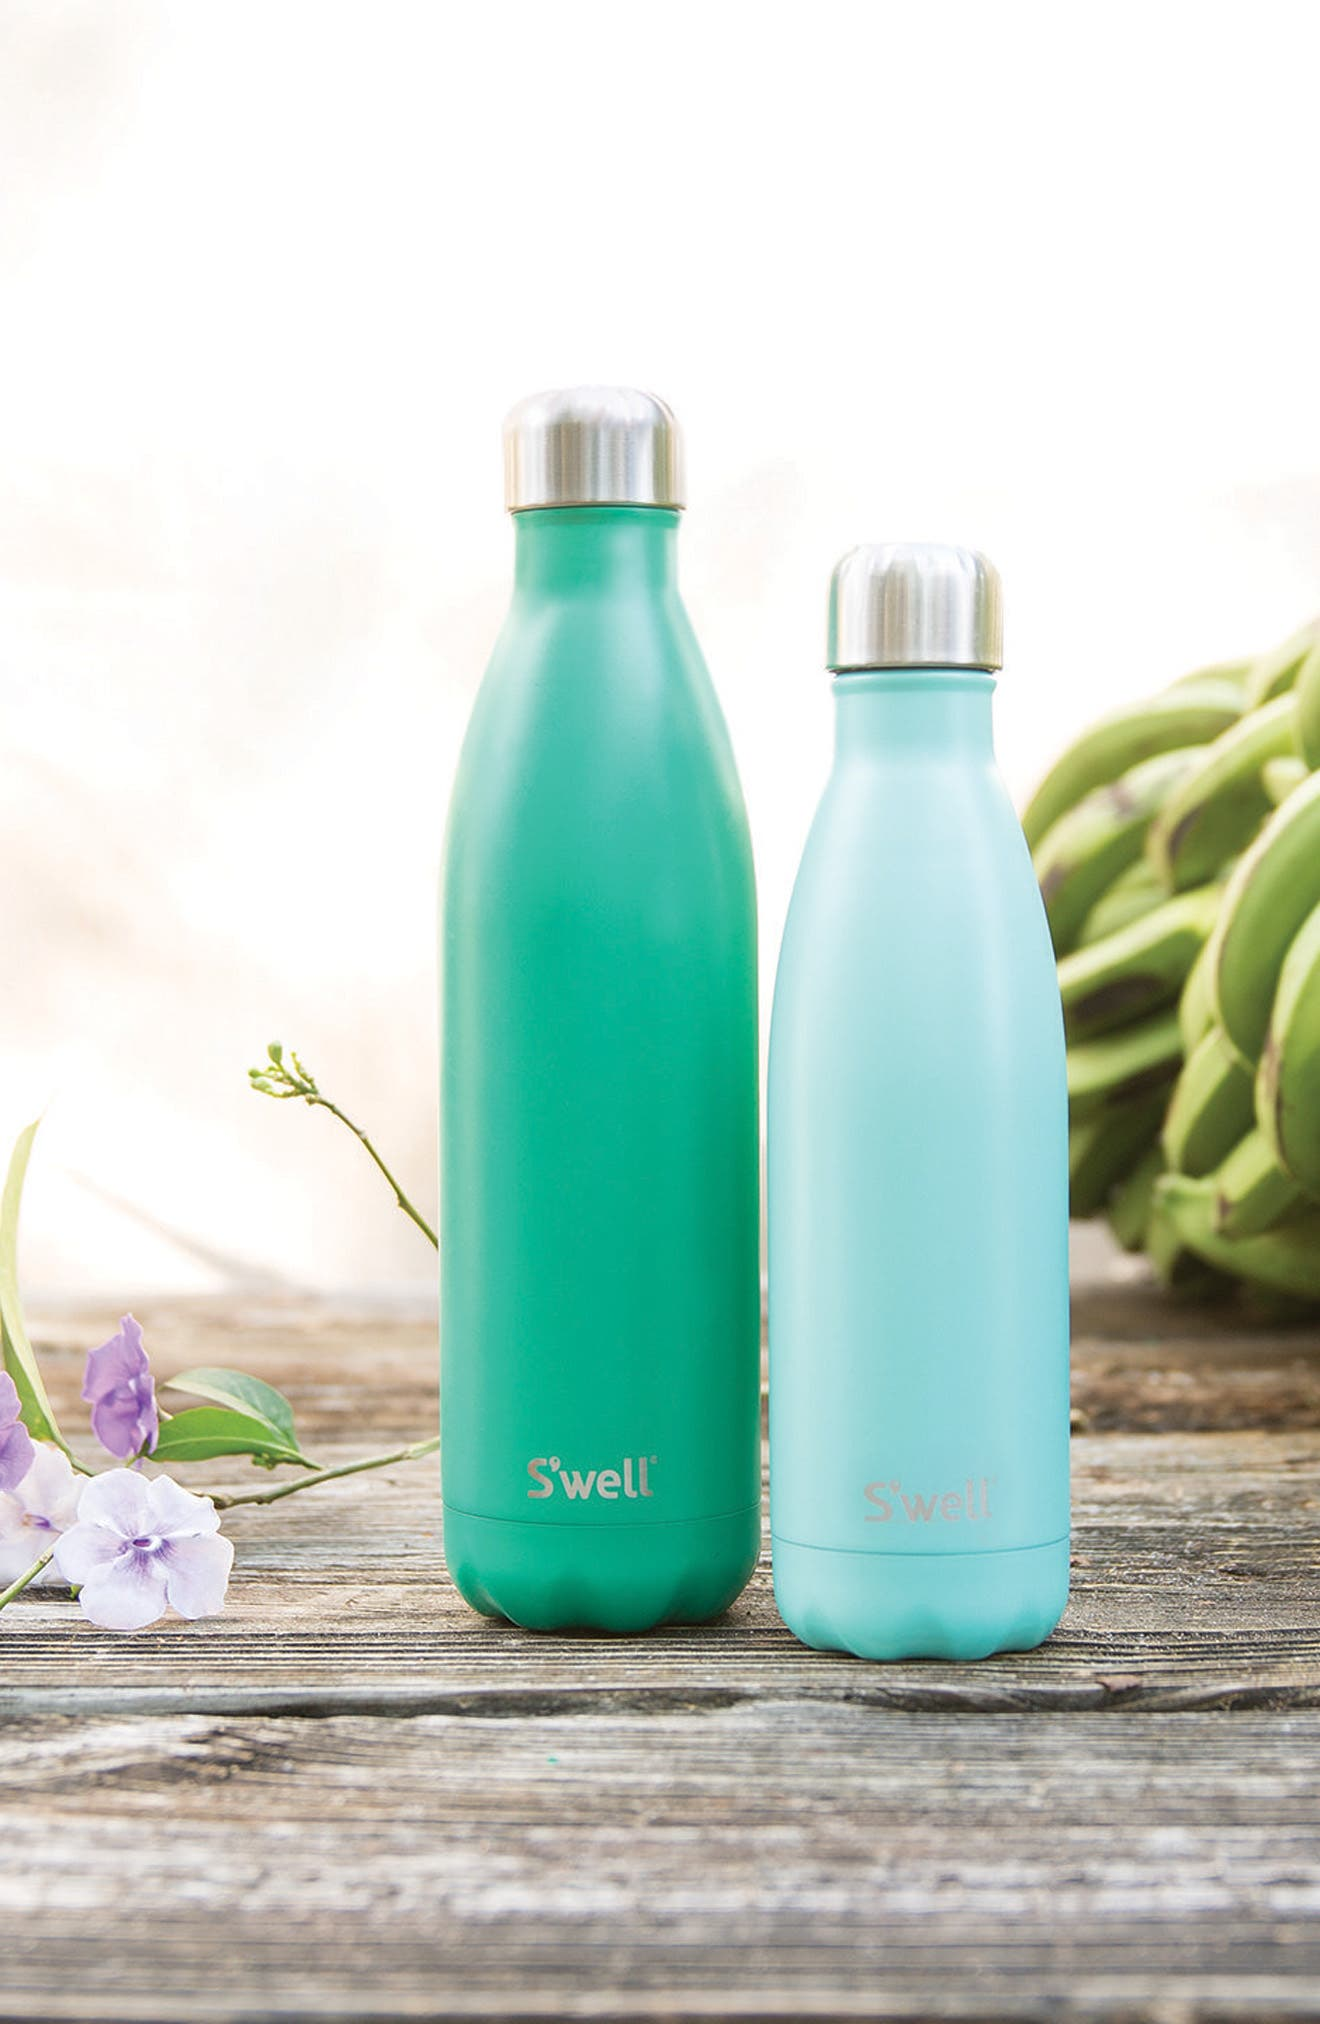 S'WELL,                             'Turquoise Blue' Stainless Steel Water Bottle,                             Alternate thumbnail 3, color,                             440